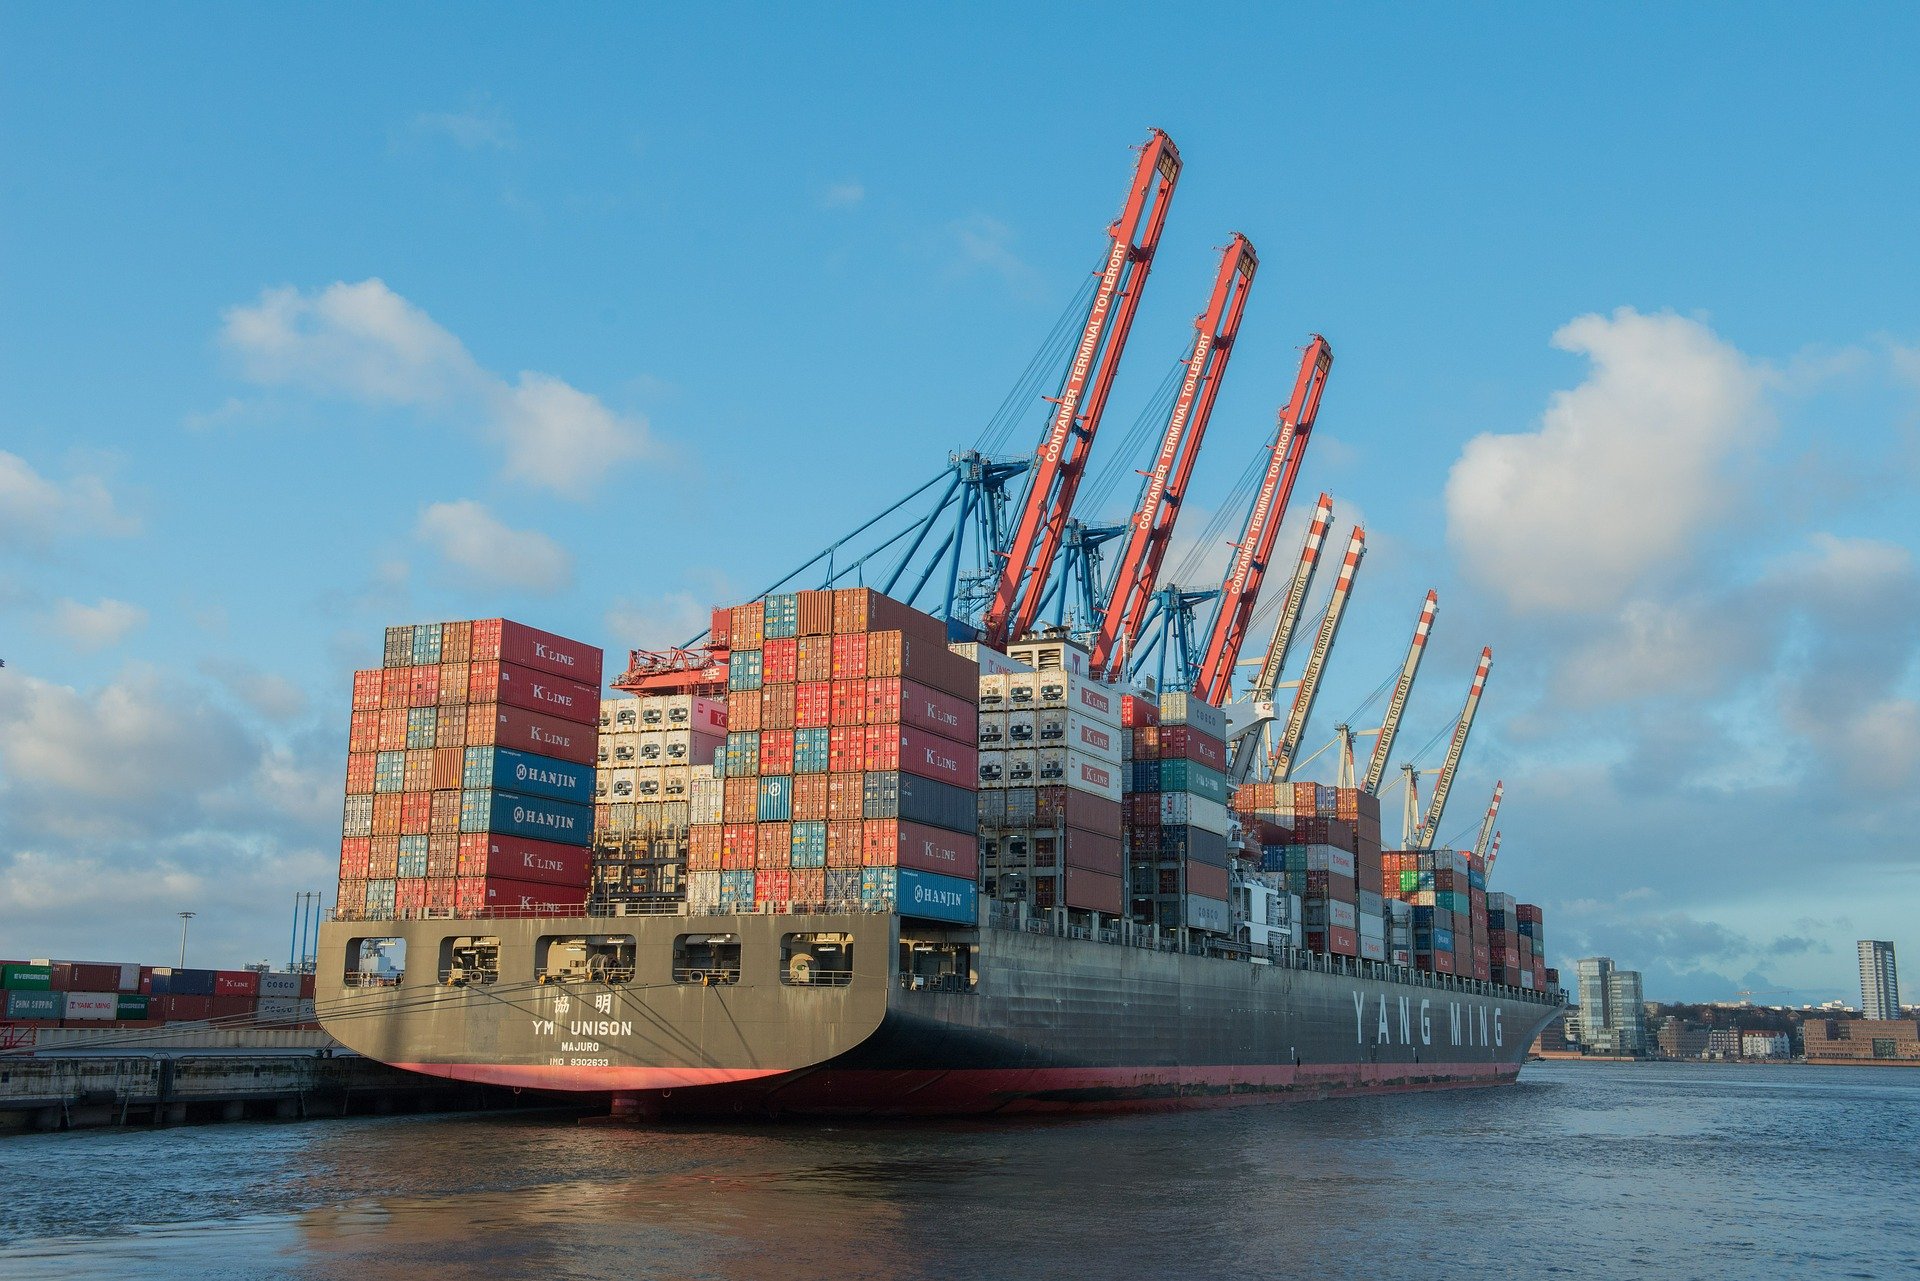 Tierra o mar: freight forwarders digitales vs. navieras digitales